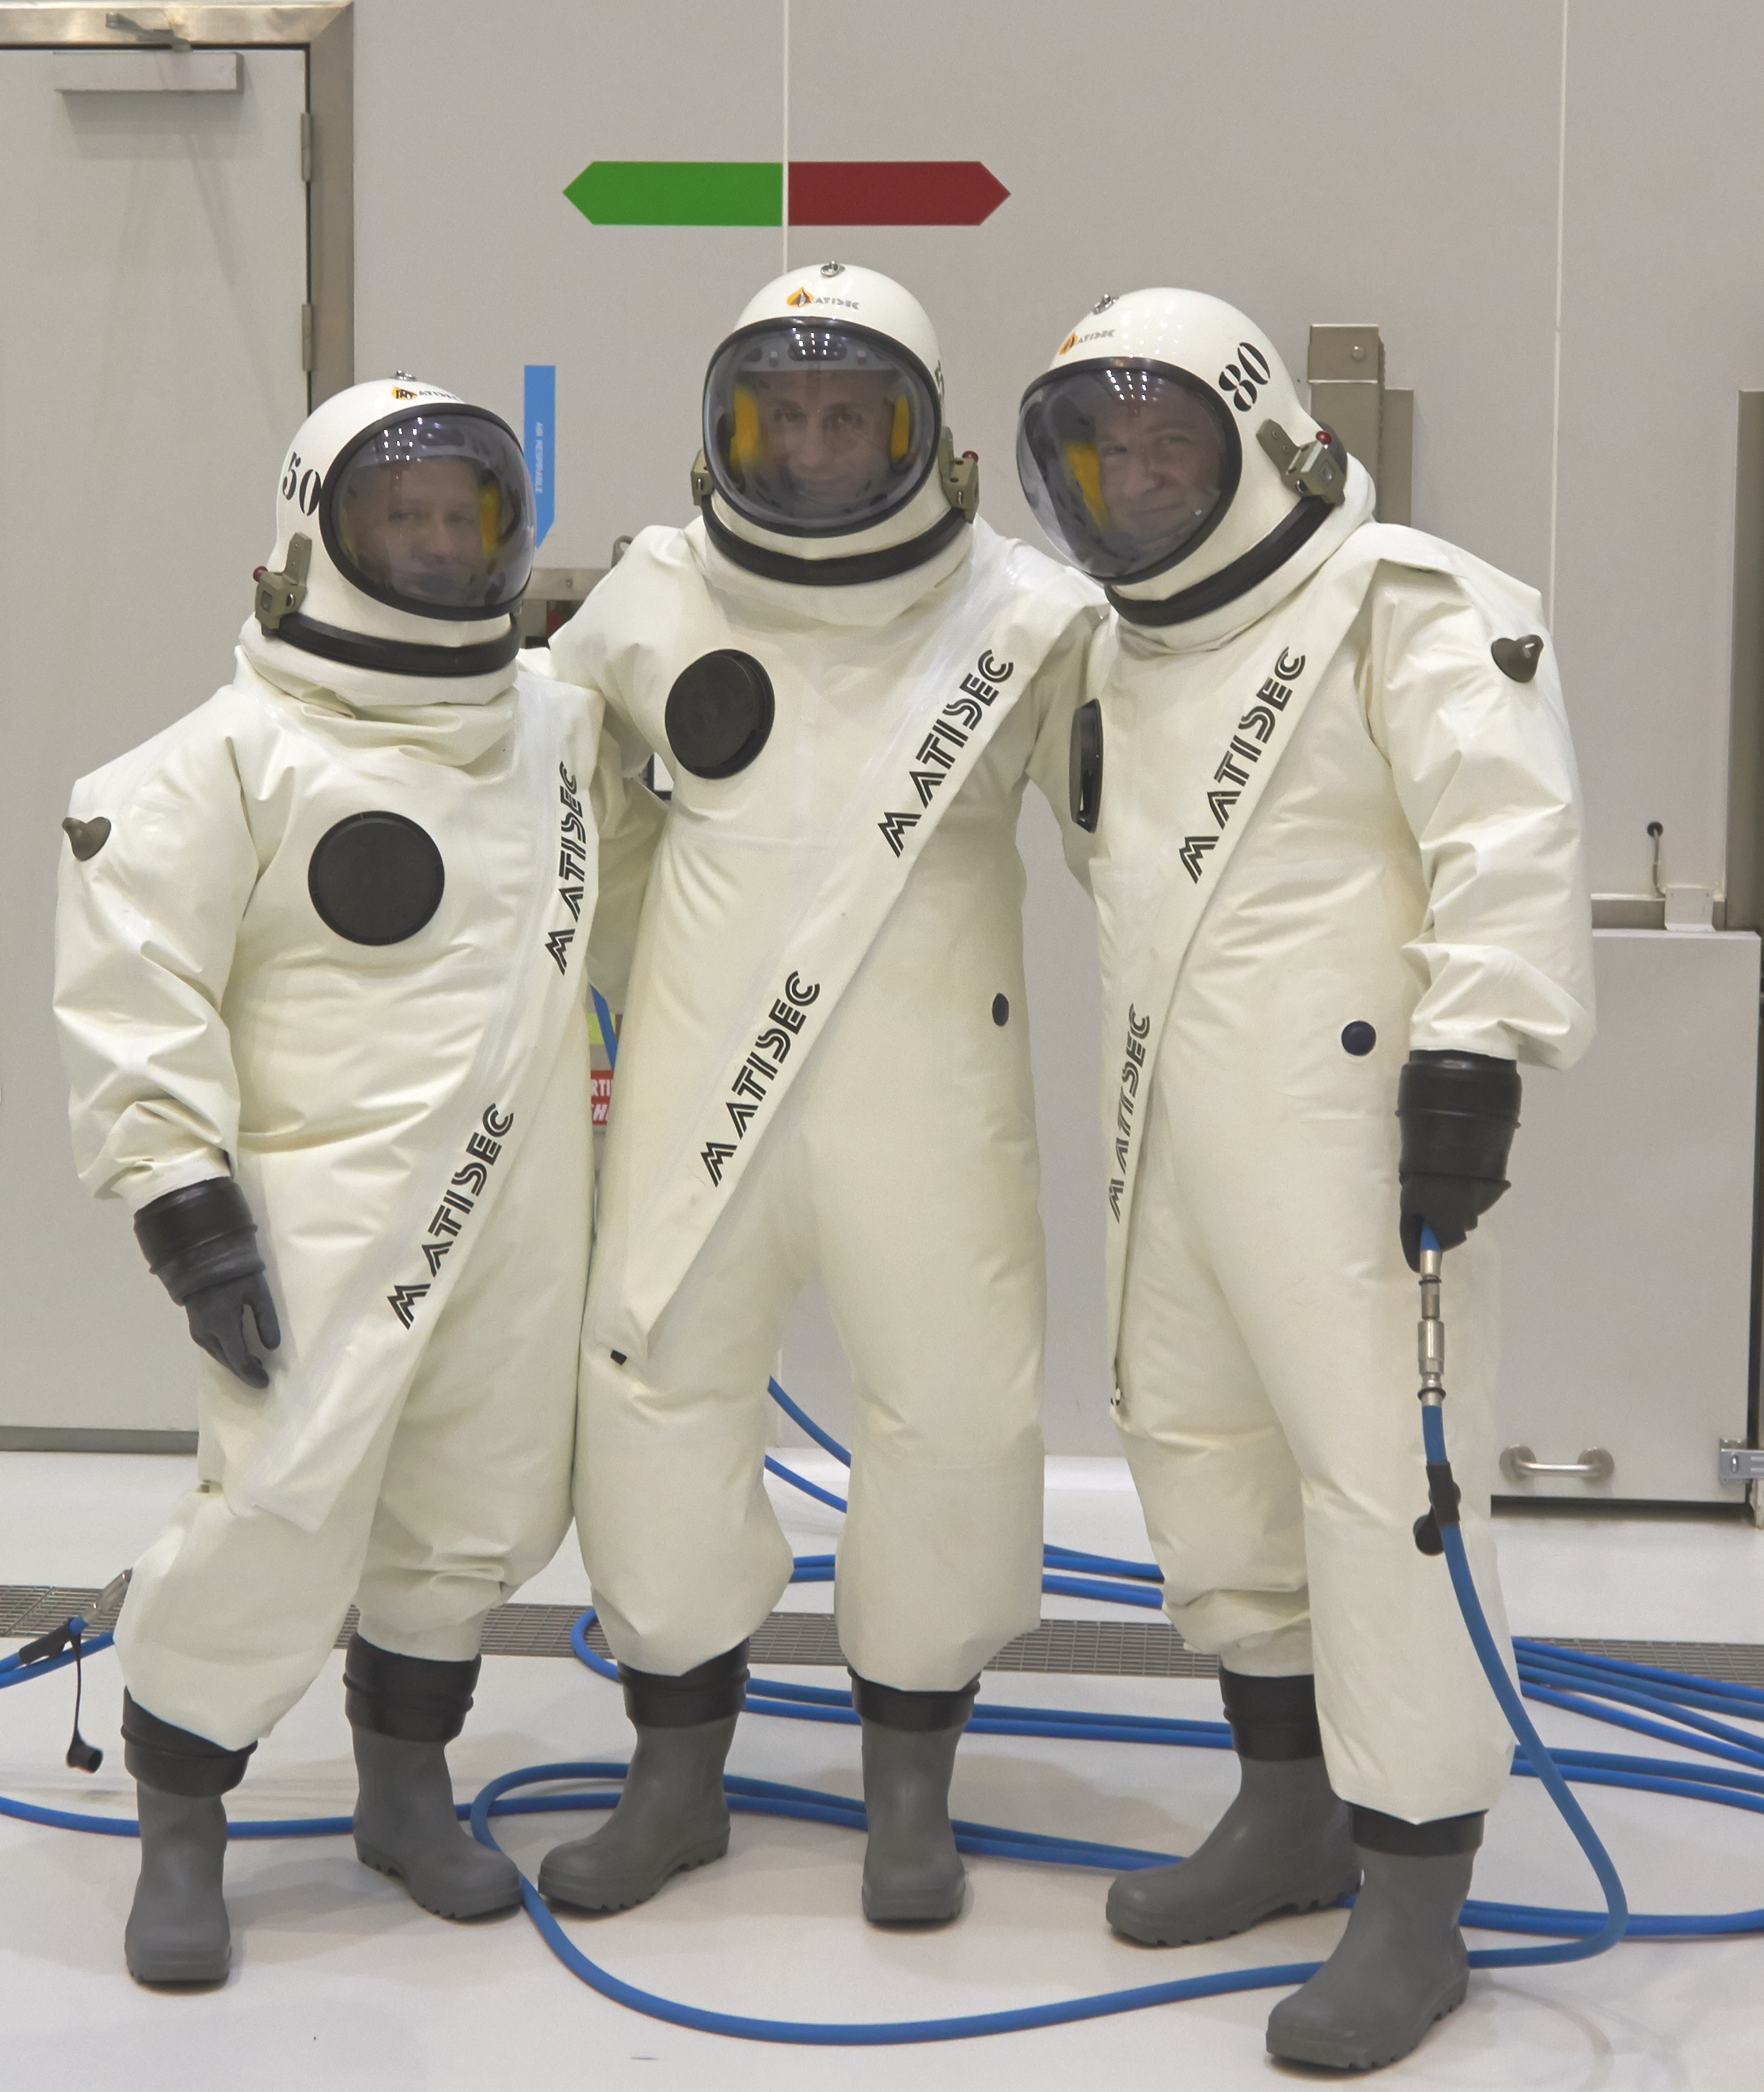 Space in Images - 2014 - 03 - Togged up in 'scape suits'